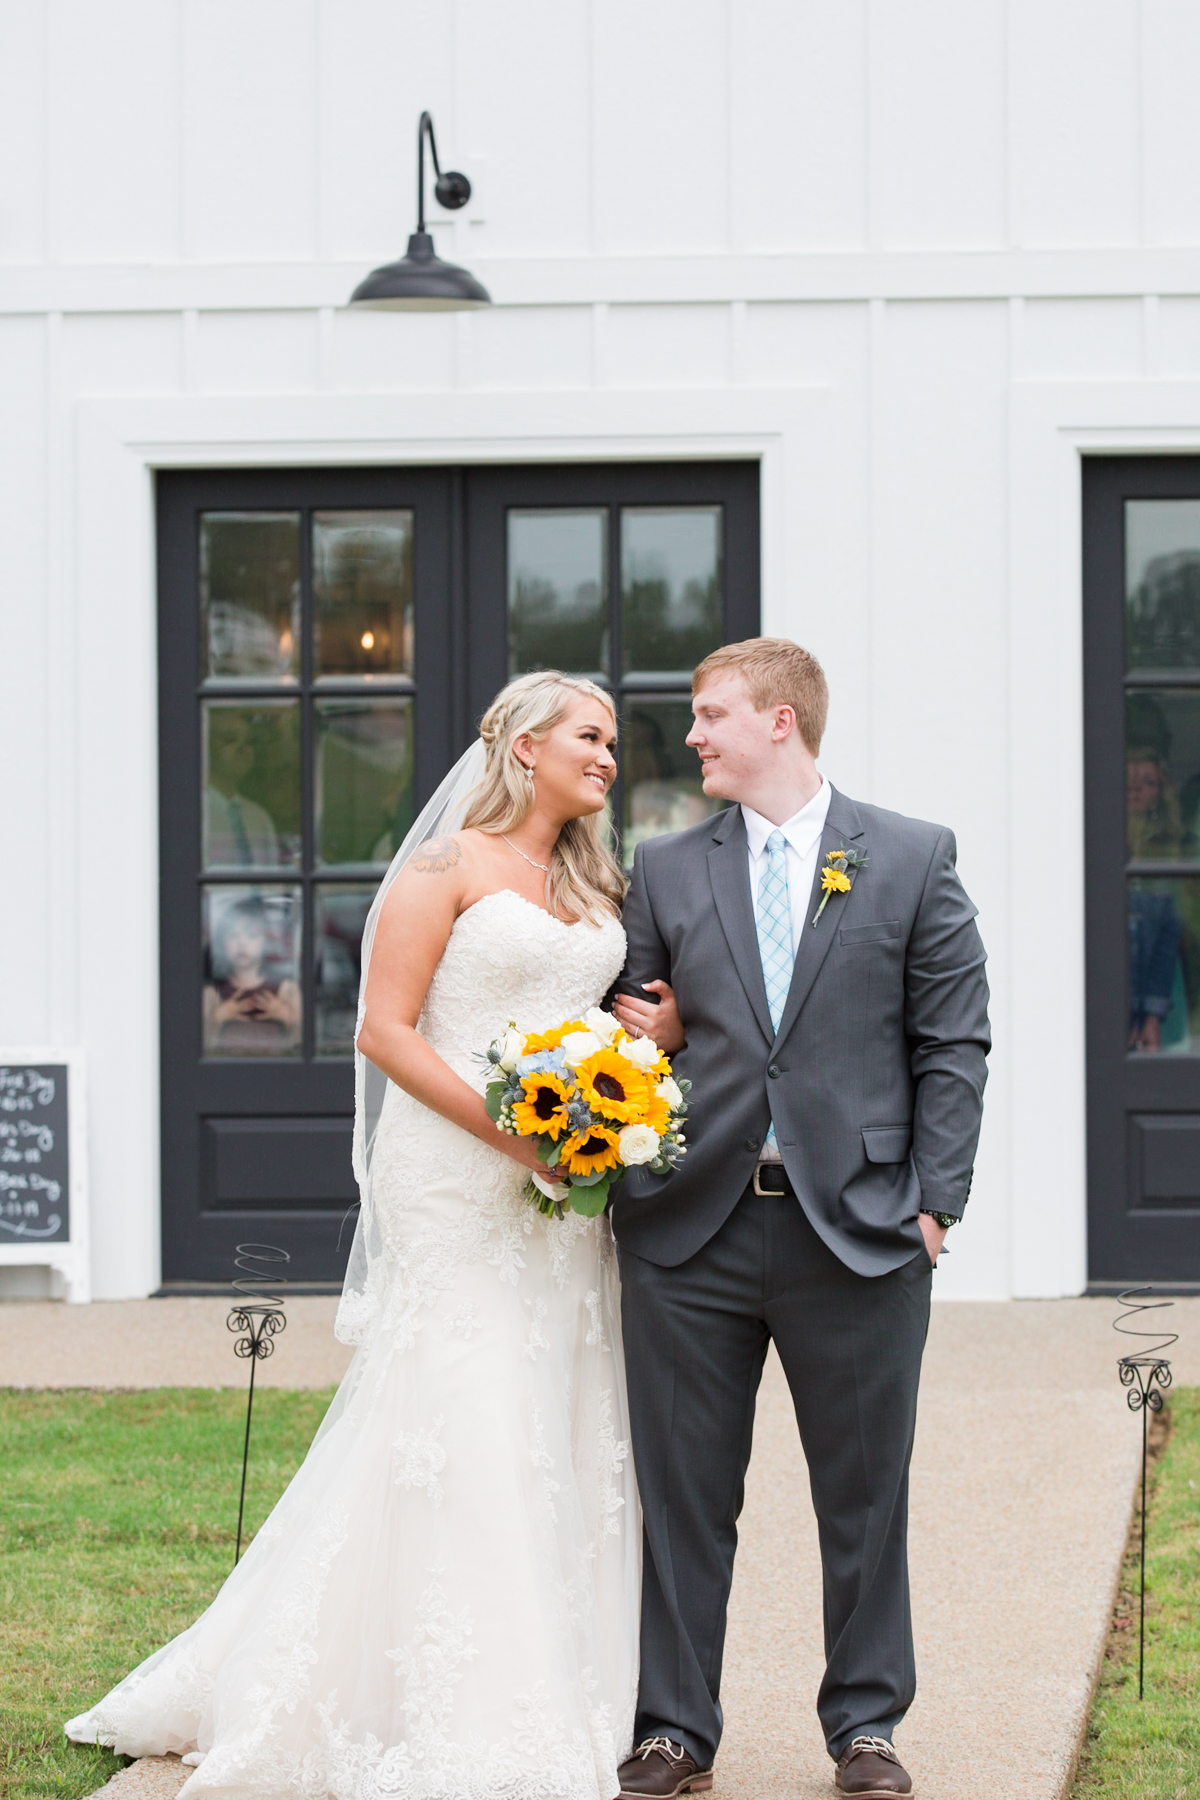 The-venue-at-white-oak-farms-wedding-nashville-wedding-photographers-0182.jpg